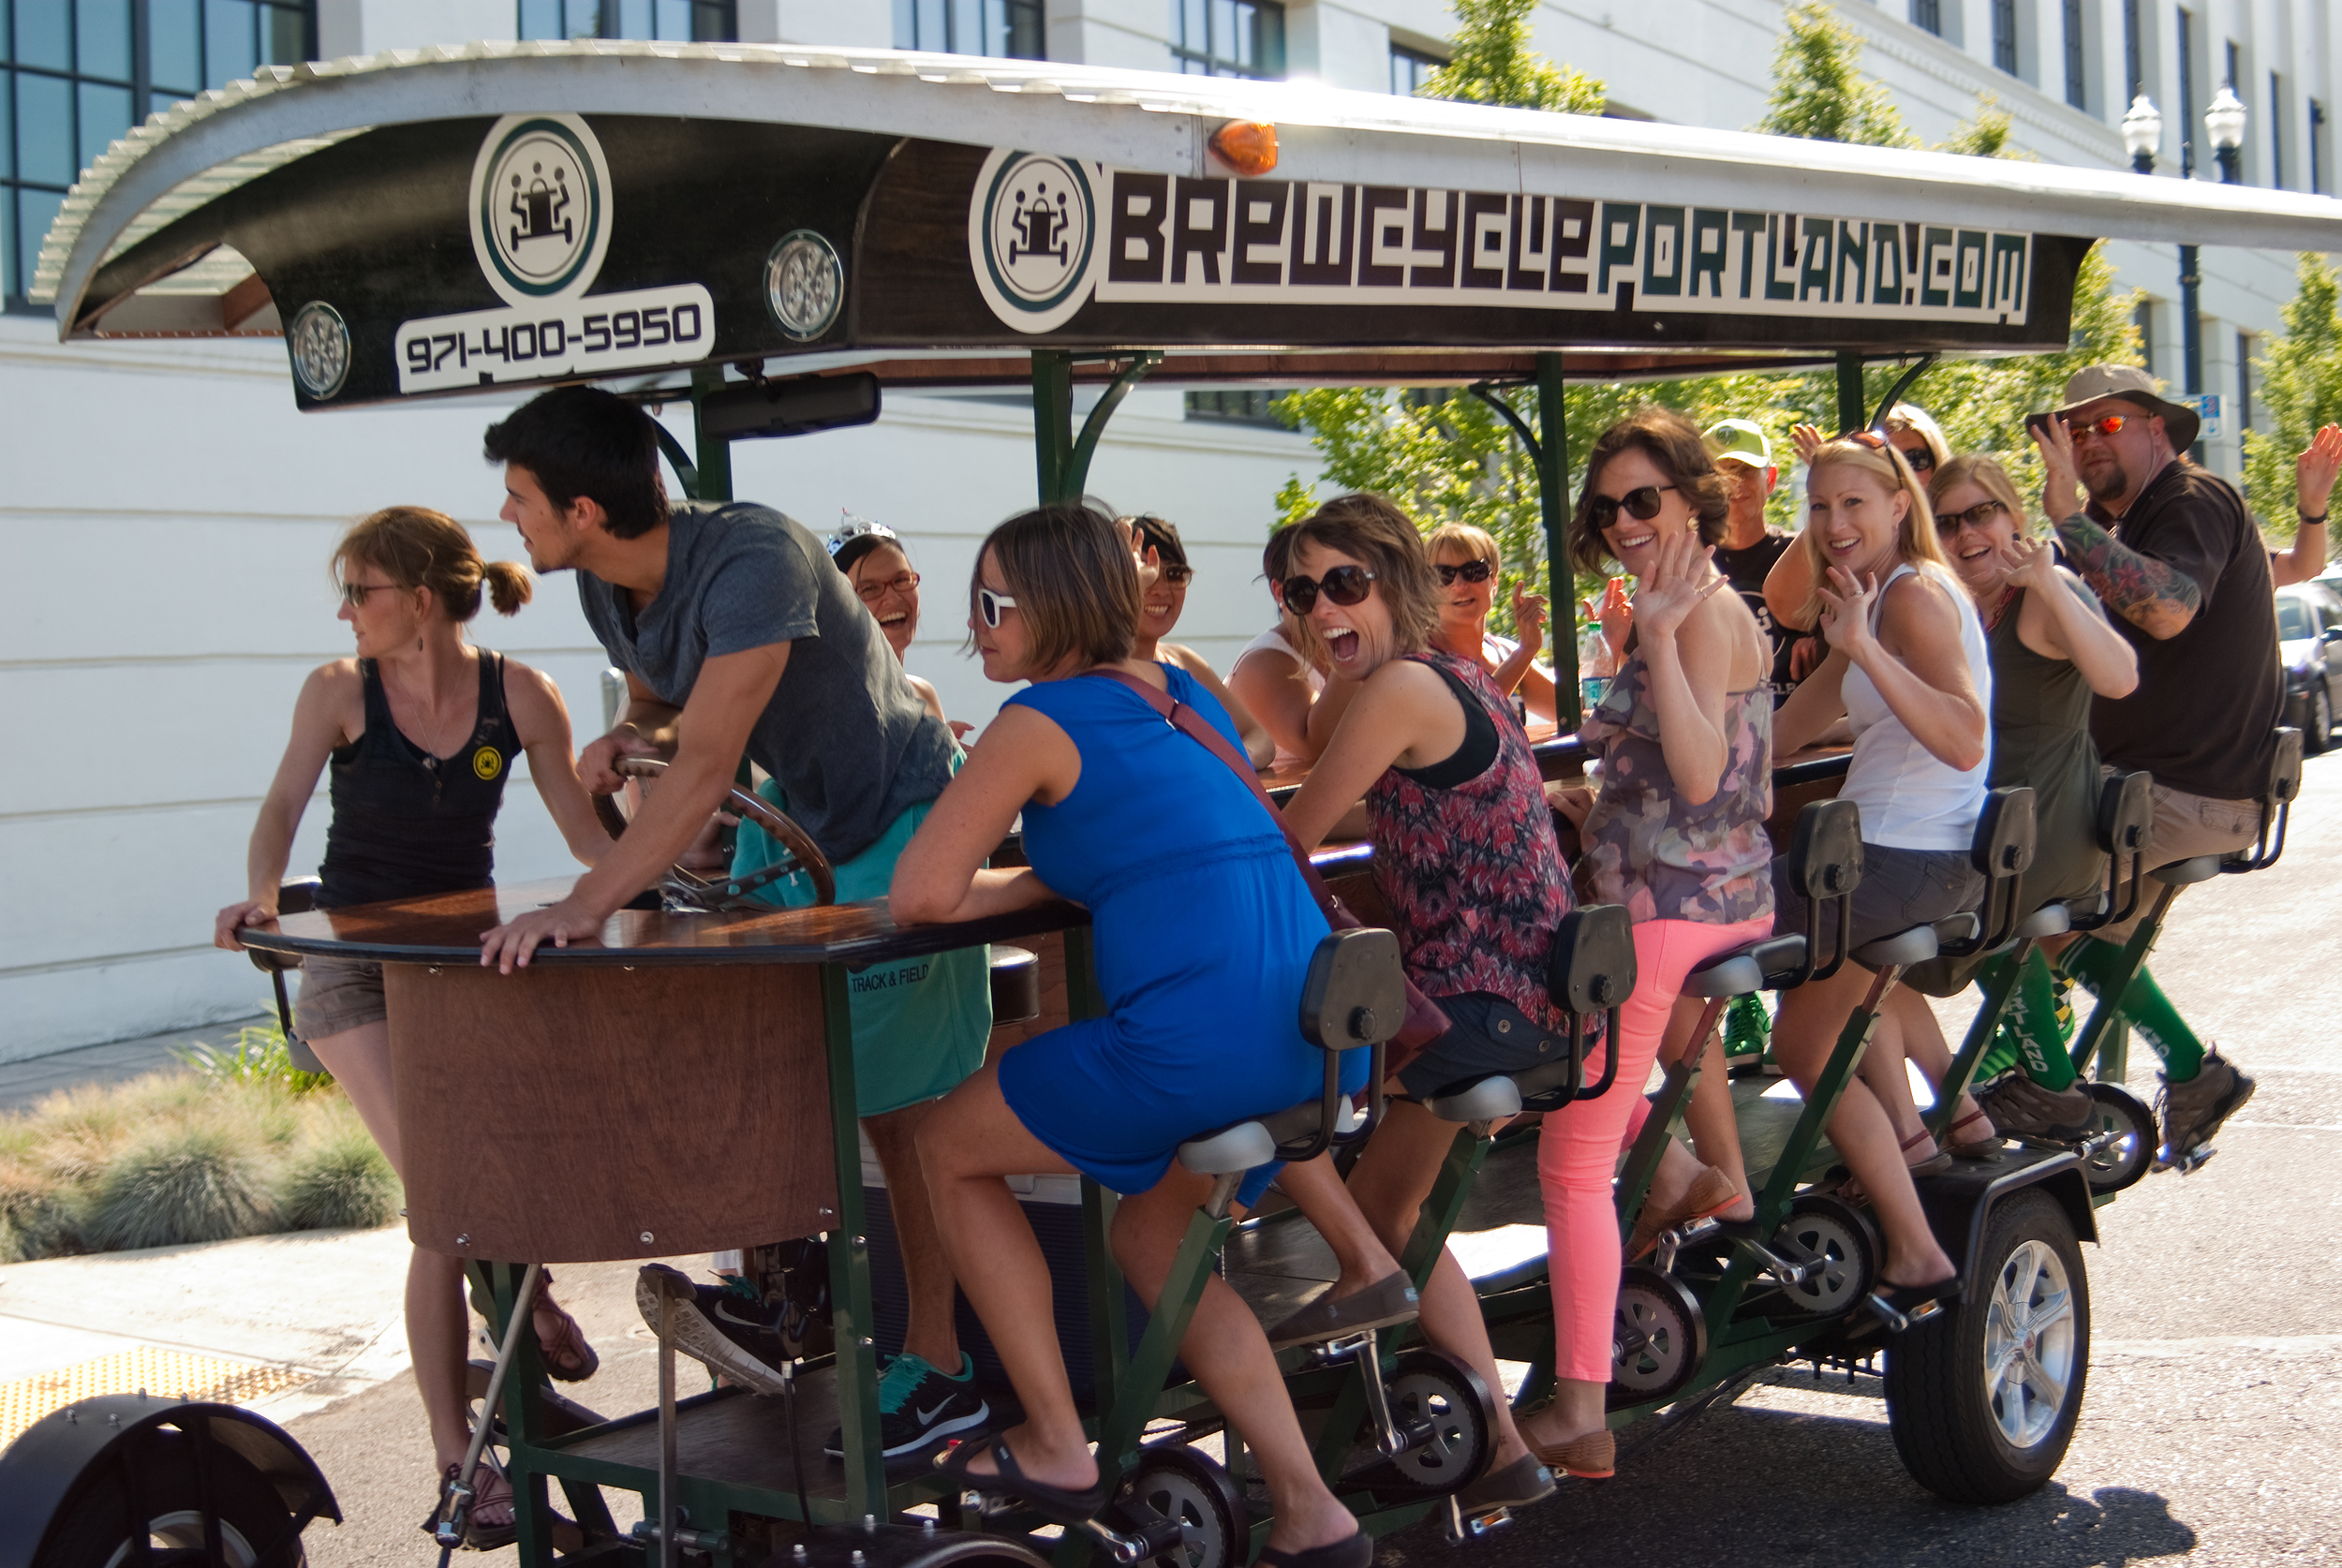 BrewCycle offers themed pub crawls, including a dive bar route. Image courtesy of Travel Portland.